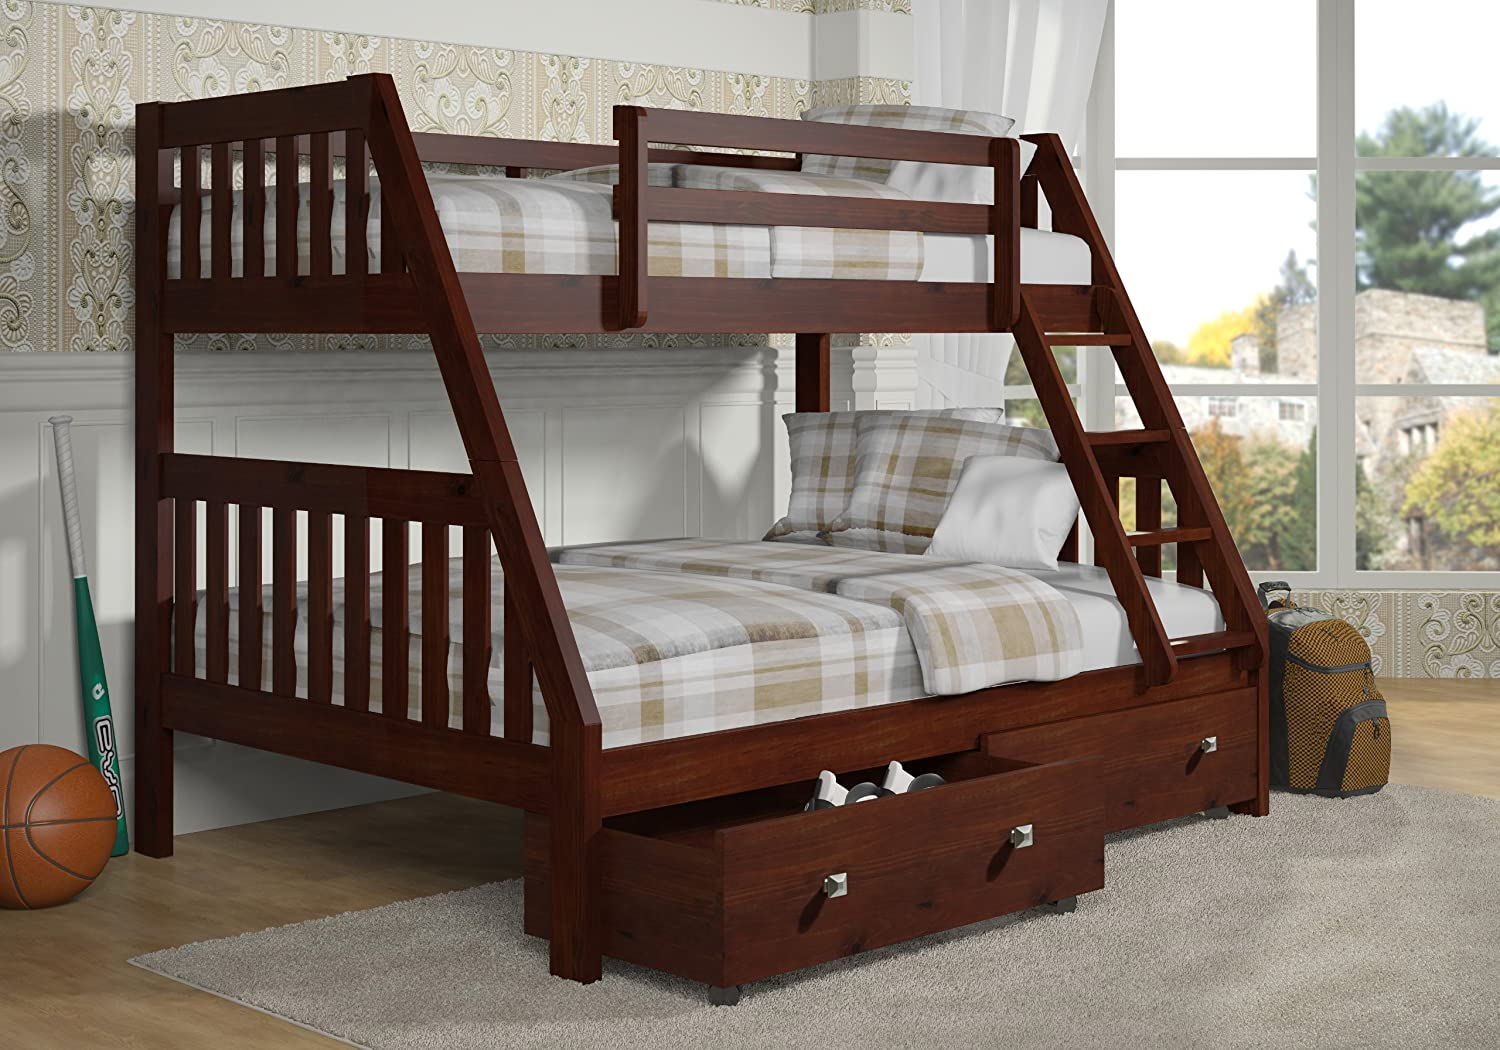 beds top over types of guide twin stair reversible bed buying full bunk